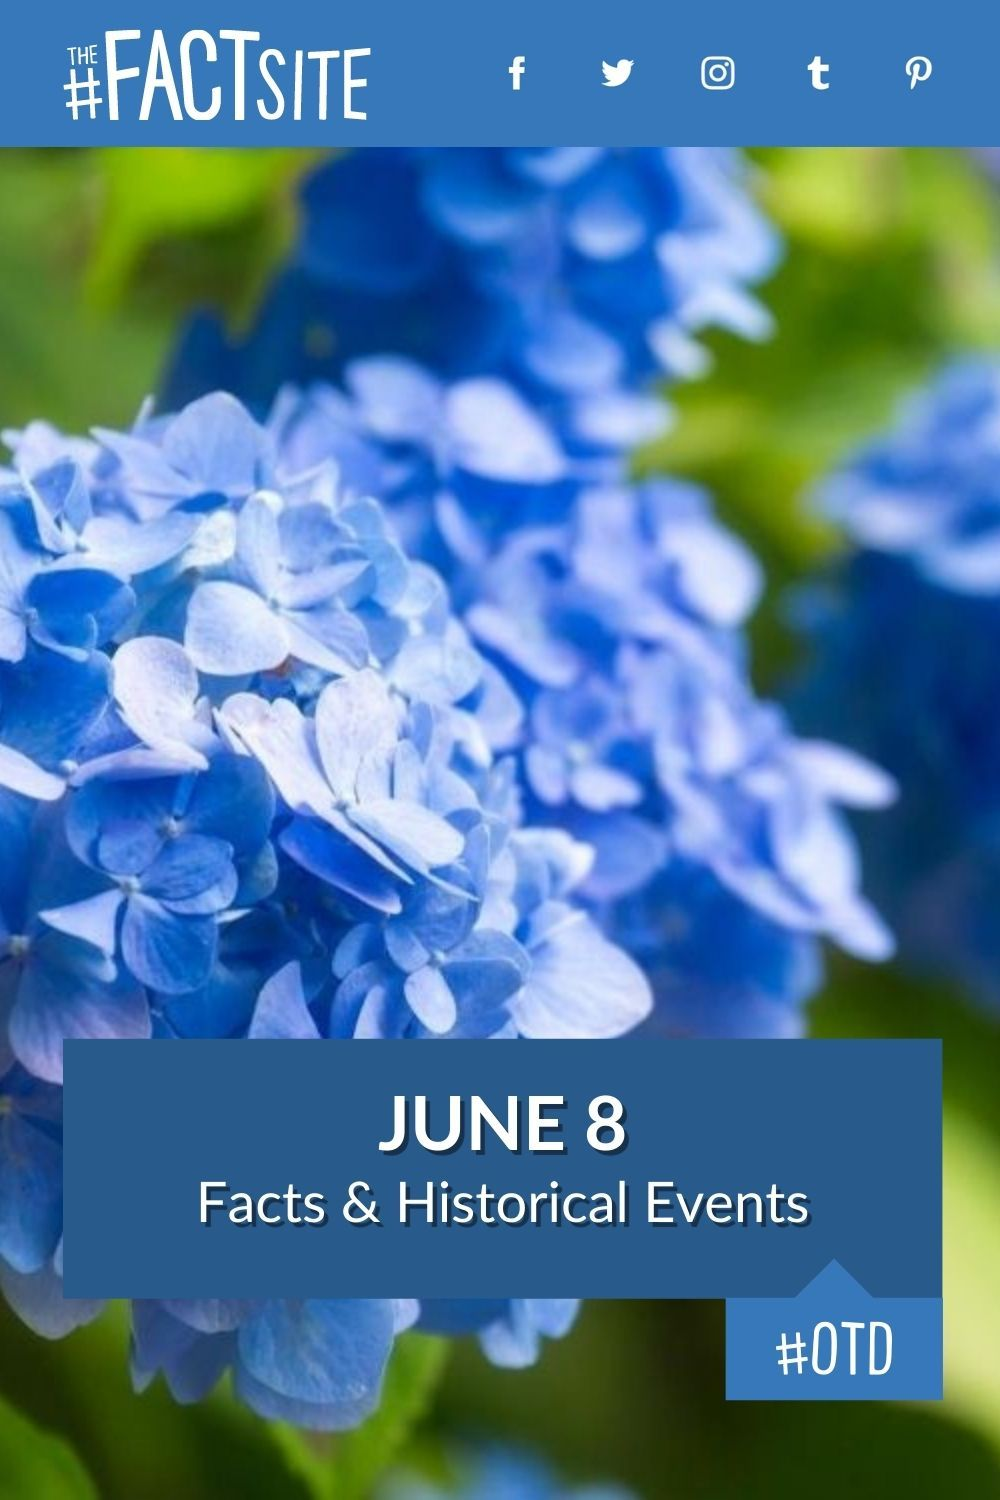 Facts & Historic Events That Happened on June 8